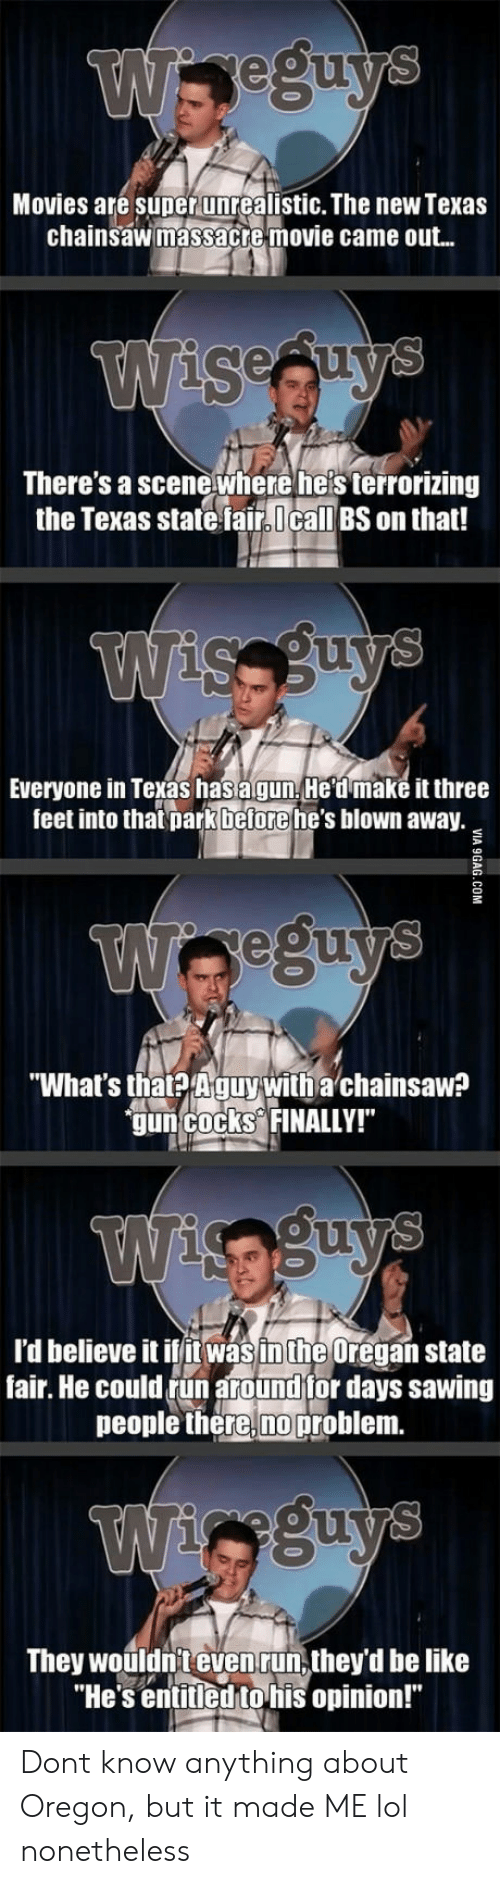 """state fair: gu  Movies are super unrealistic. The new Texas  chainsawimassacte movie came out..  sesuy  There's a scene where he's terrorizing  the Texas state faircall BS on that!  Everyone in Texas has agun He dmake it three  feet into that parkbeforehe's blown away  eeum  """"What's tha? Aguywitha chainsaw  guncocks FINALLY!  OU  l'd believe it ilin was inthe Oregan state  fair. He could run around tor days sawing  people there,no problem.  They wouldn't evenrun, they'd be like  """"He's entitledtohis opinion!"""" Dont know anything about Oregon, but it made ME lol nonetheless"""